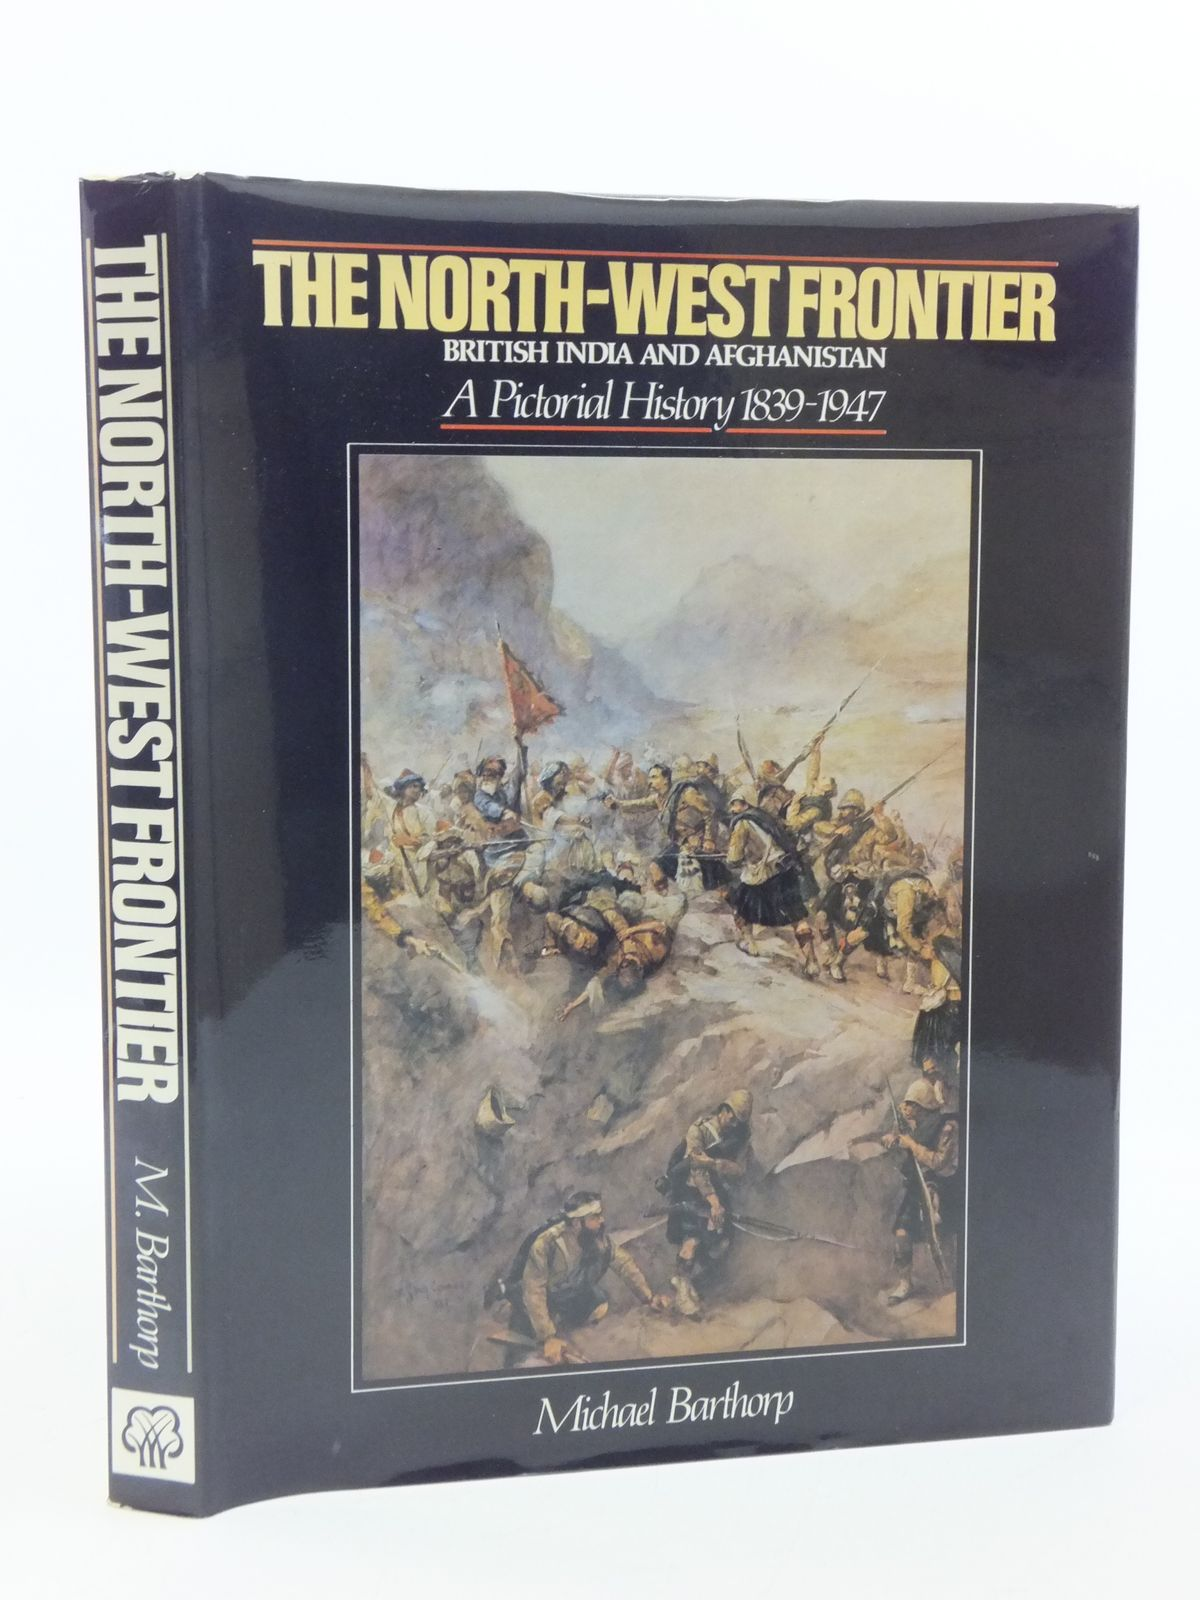 Photo of THE NORTH-WEST FRONTIER BRITISH INDIA AND AFGHANISTAN written by Barthorp, Michael published by New Orchard Editions Ltd (STOCK CODE: 1605699)  for sale by Stella & Rose's Books